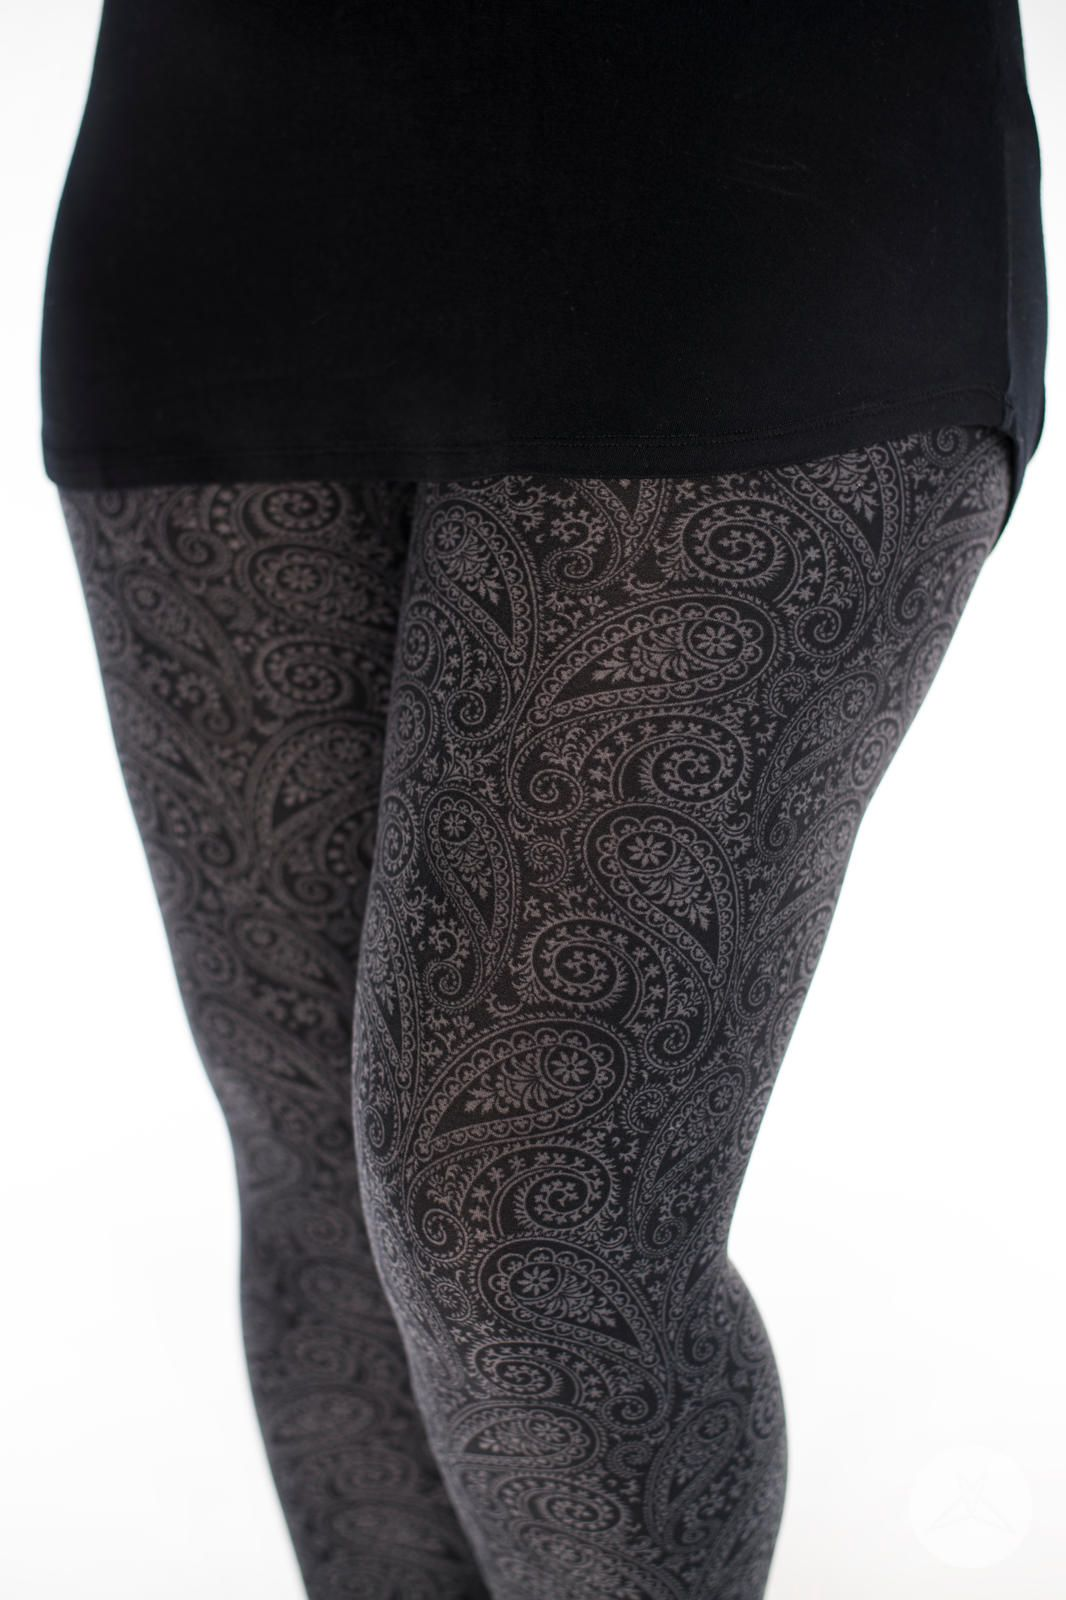 afcfcd7b1d750 Serendipity SweetLegs leggings are the perfect subdued grey and black  monochromatic paisley pattern. Pairs with almost anything in your wardrobe